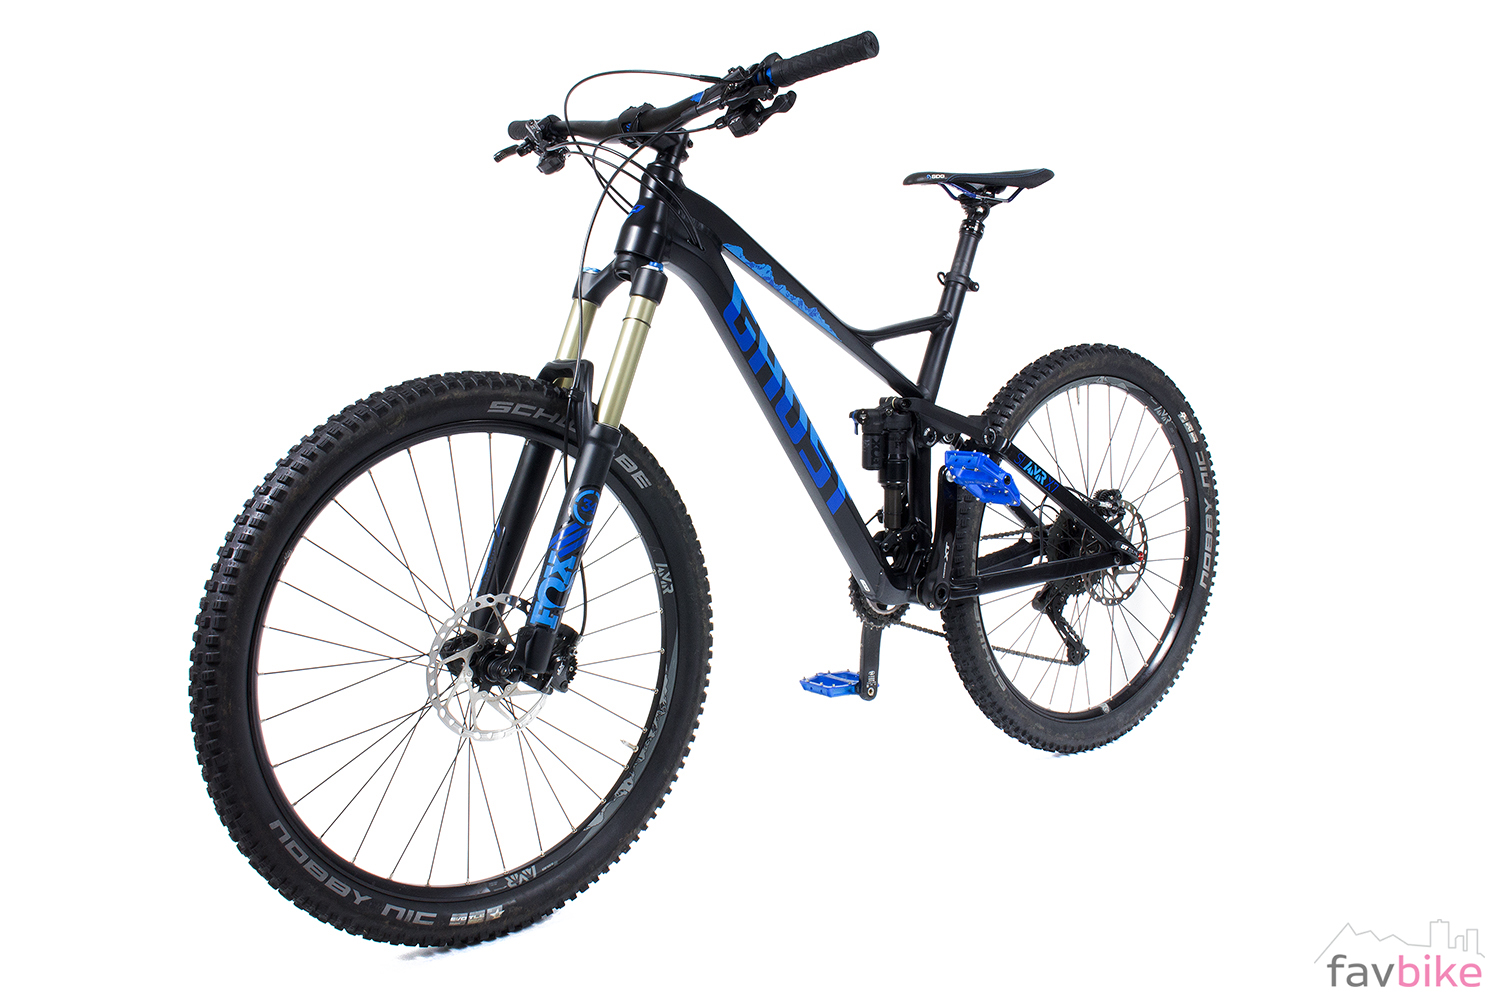 Ghost Sl Amr X 7 All Mountain Bike Im Test likewise Ghost Sl Amr X 7 All Mountain Bike Im Test together with Ober Test together with 2896562 as well Ortho Exam Rubin Flash Cards. on ober test